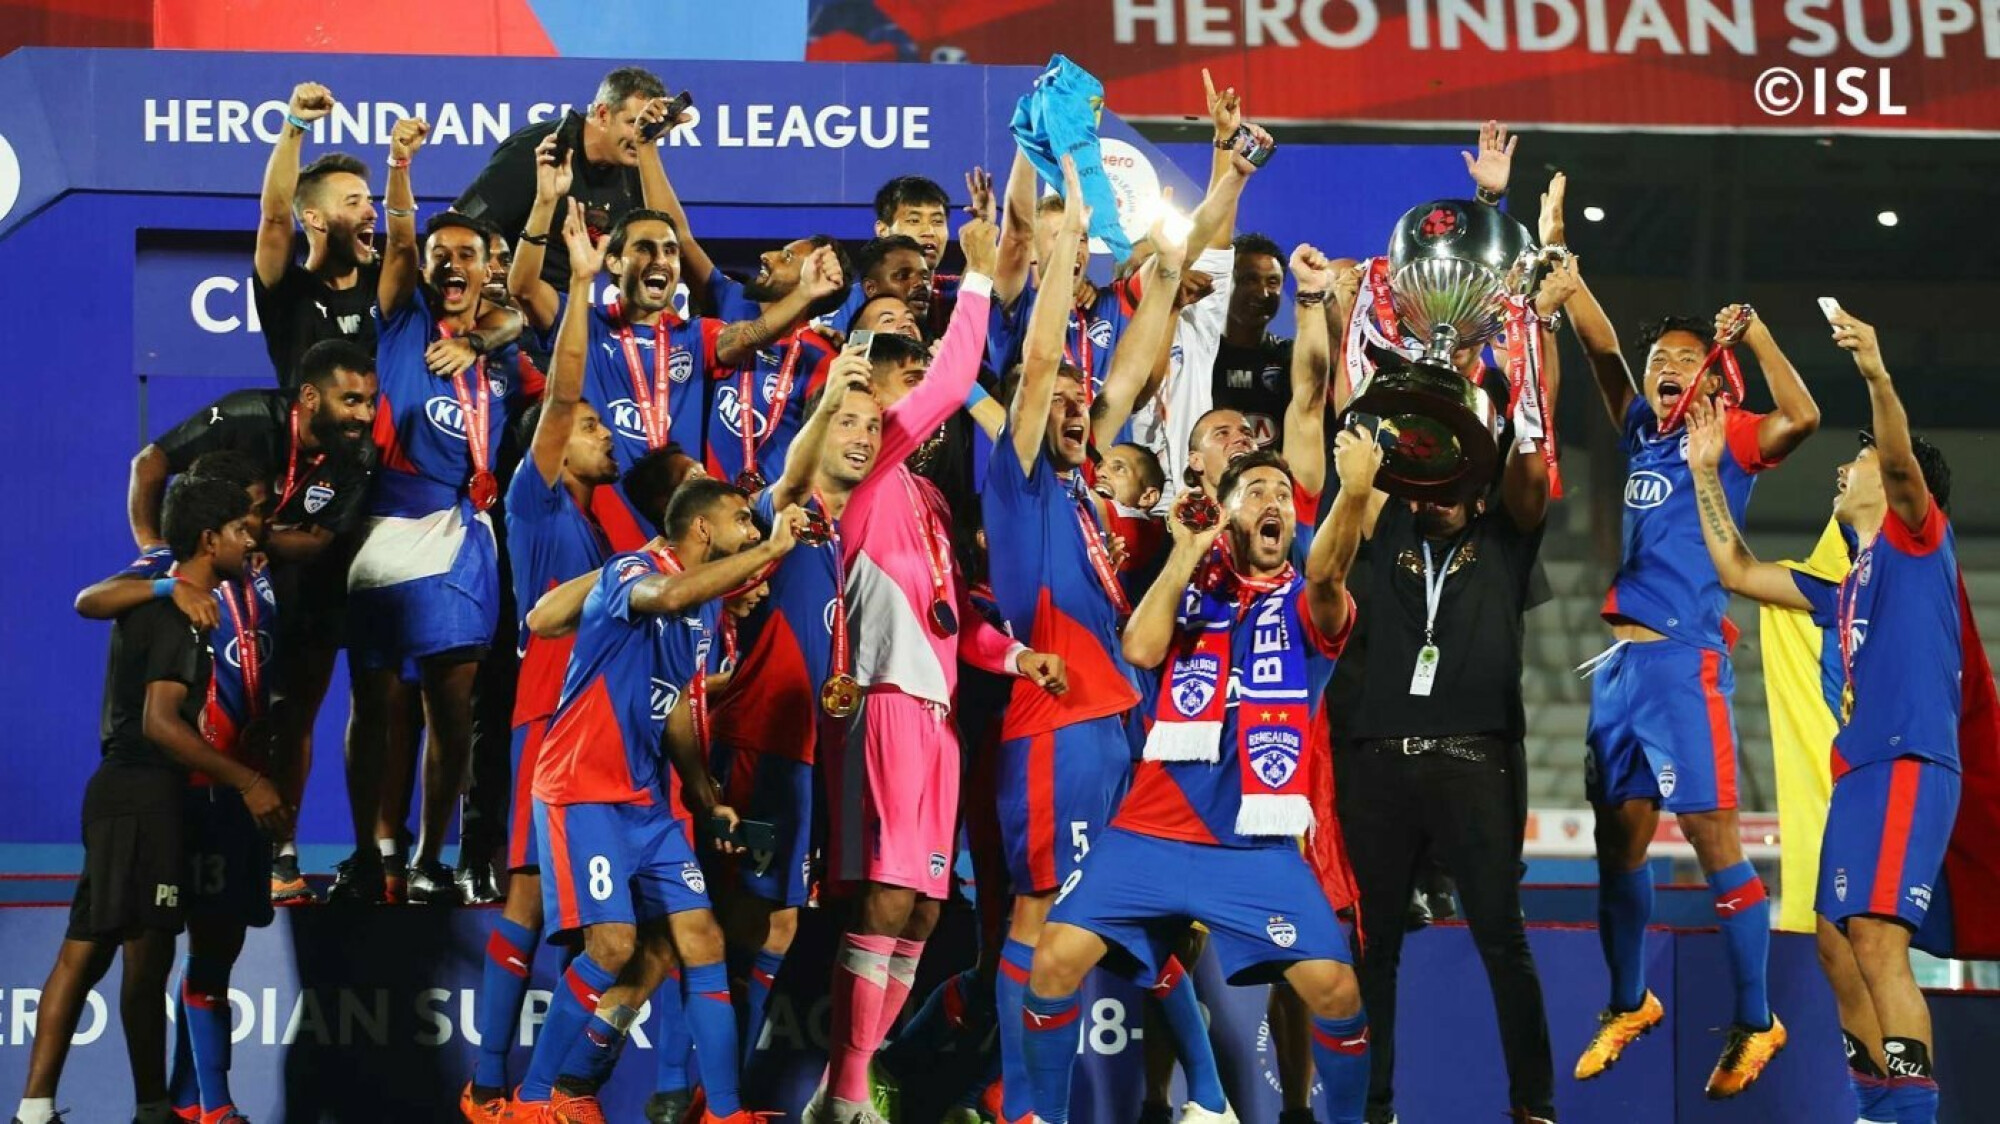 Bengaluru FC stamp their dominance all over the ISL as they finally lift the title.